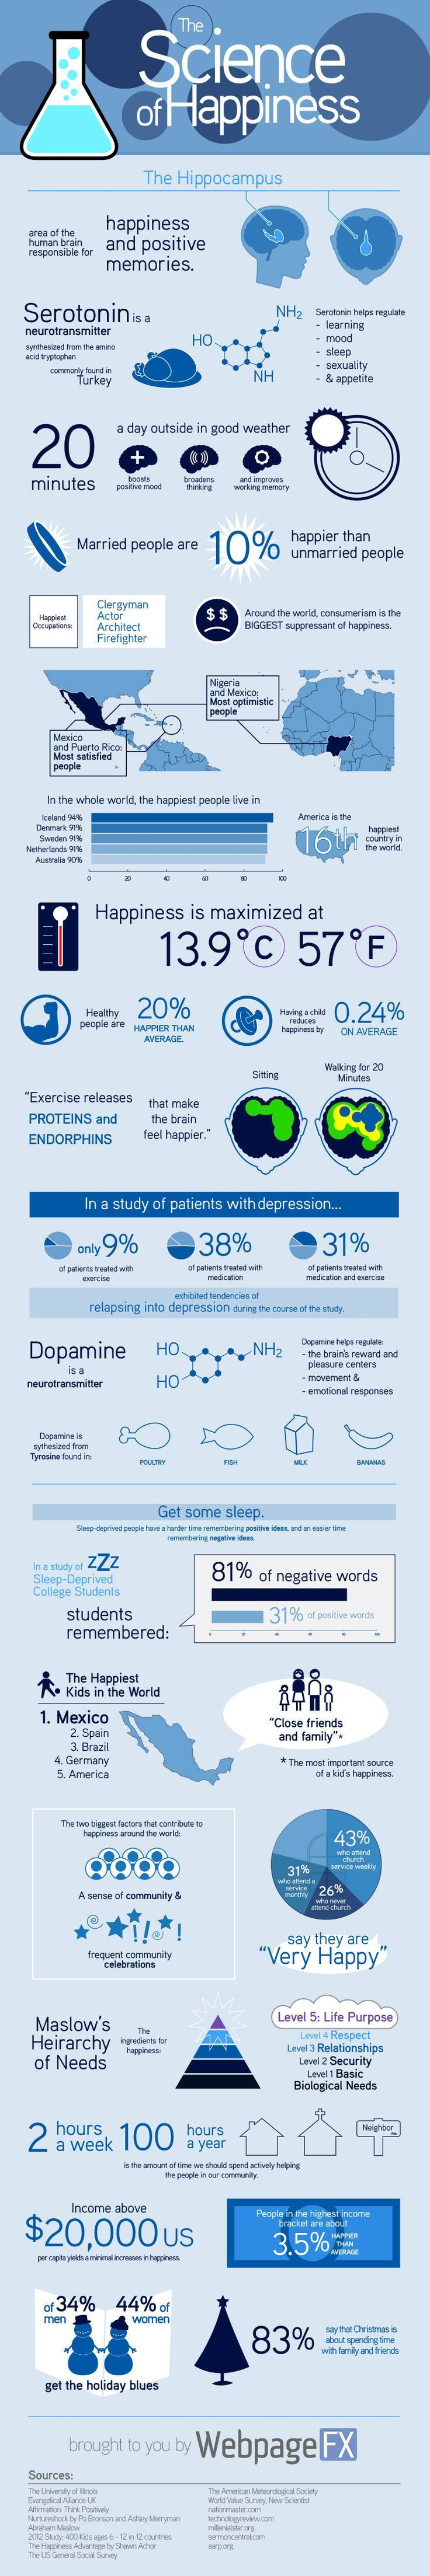 The Science Of Happiness Infographic: